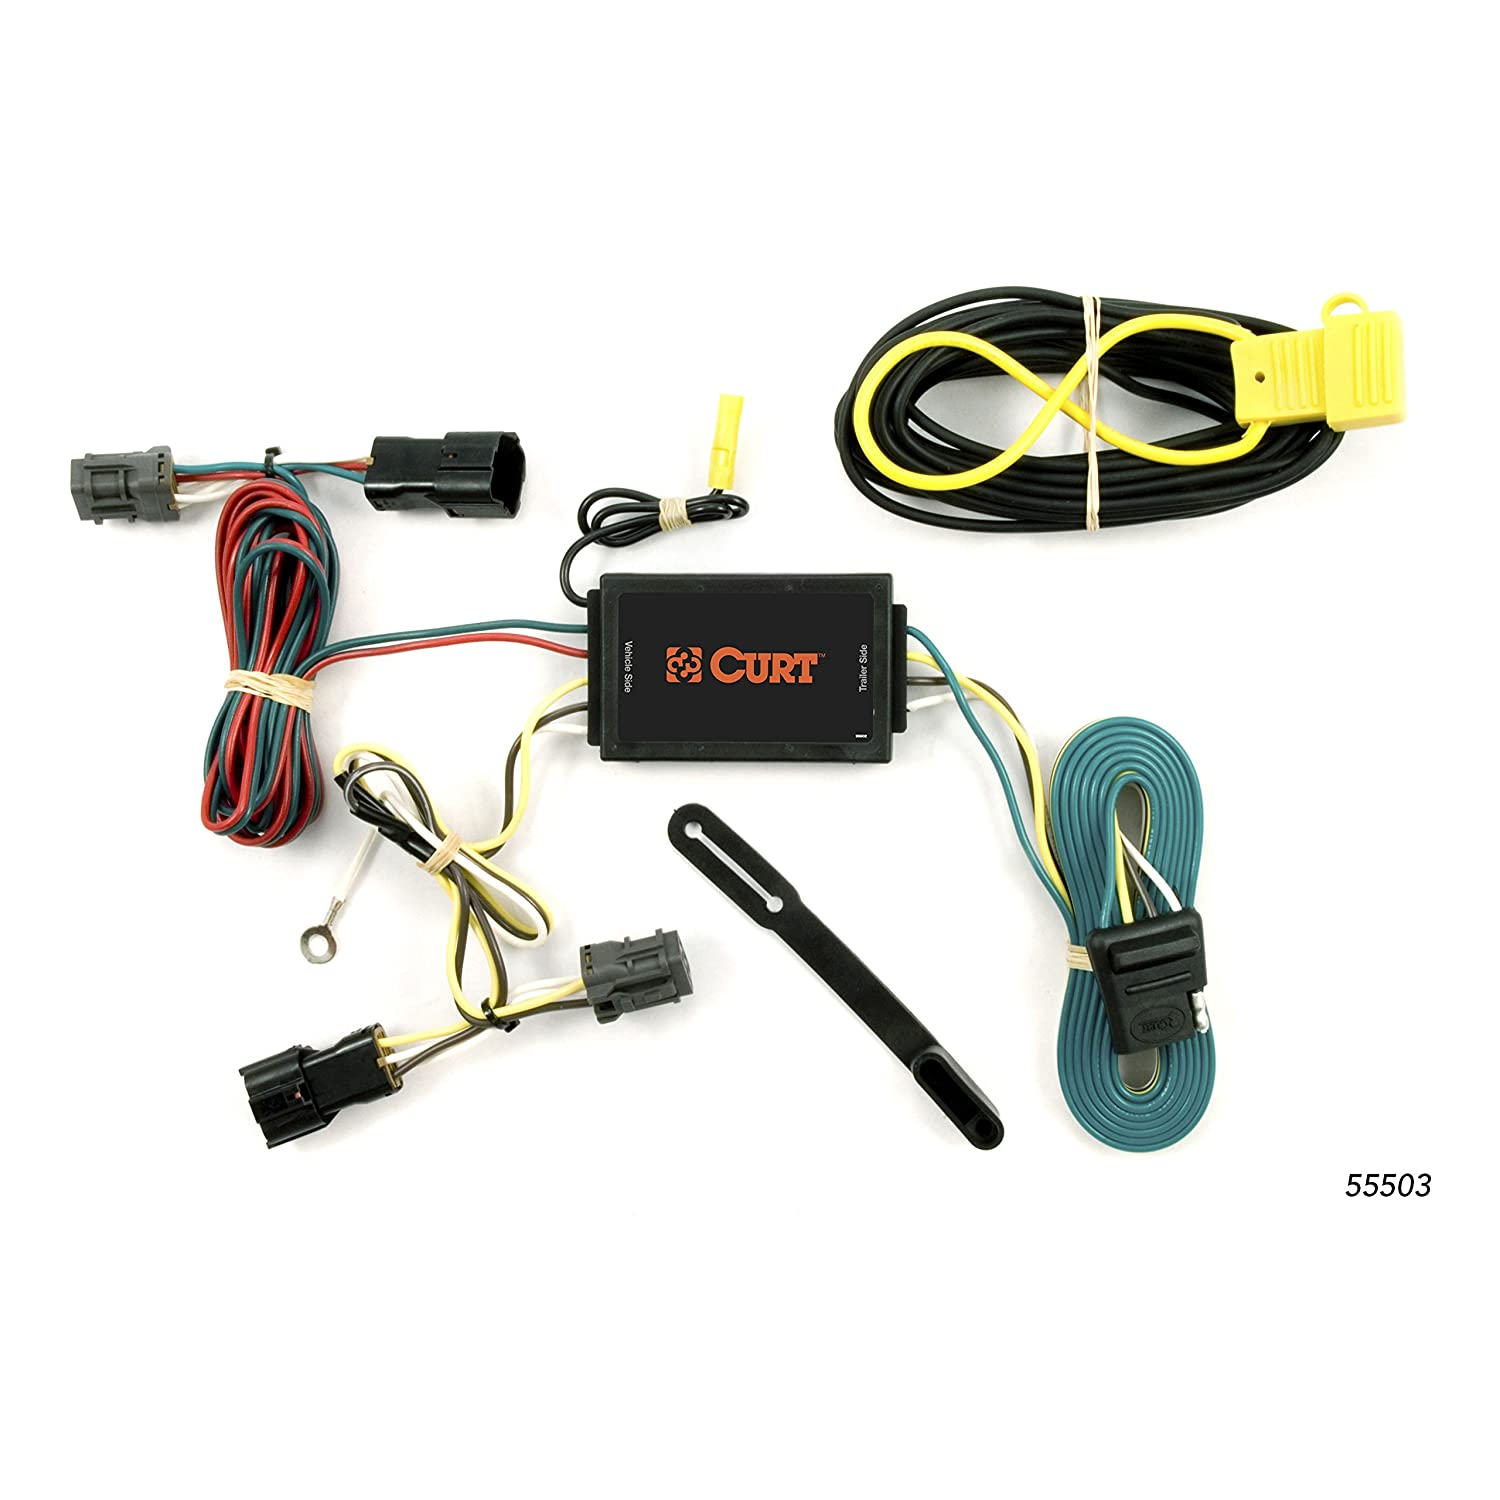 Curt Class 3 Hitch Tow Package With 2 Ball For Hyundai Chevy Equinox Trailer Wiring Entourage Kia Sedona Automotive